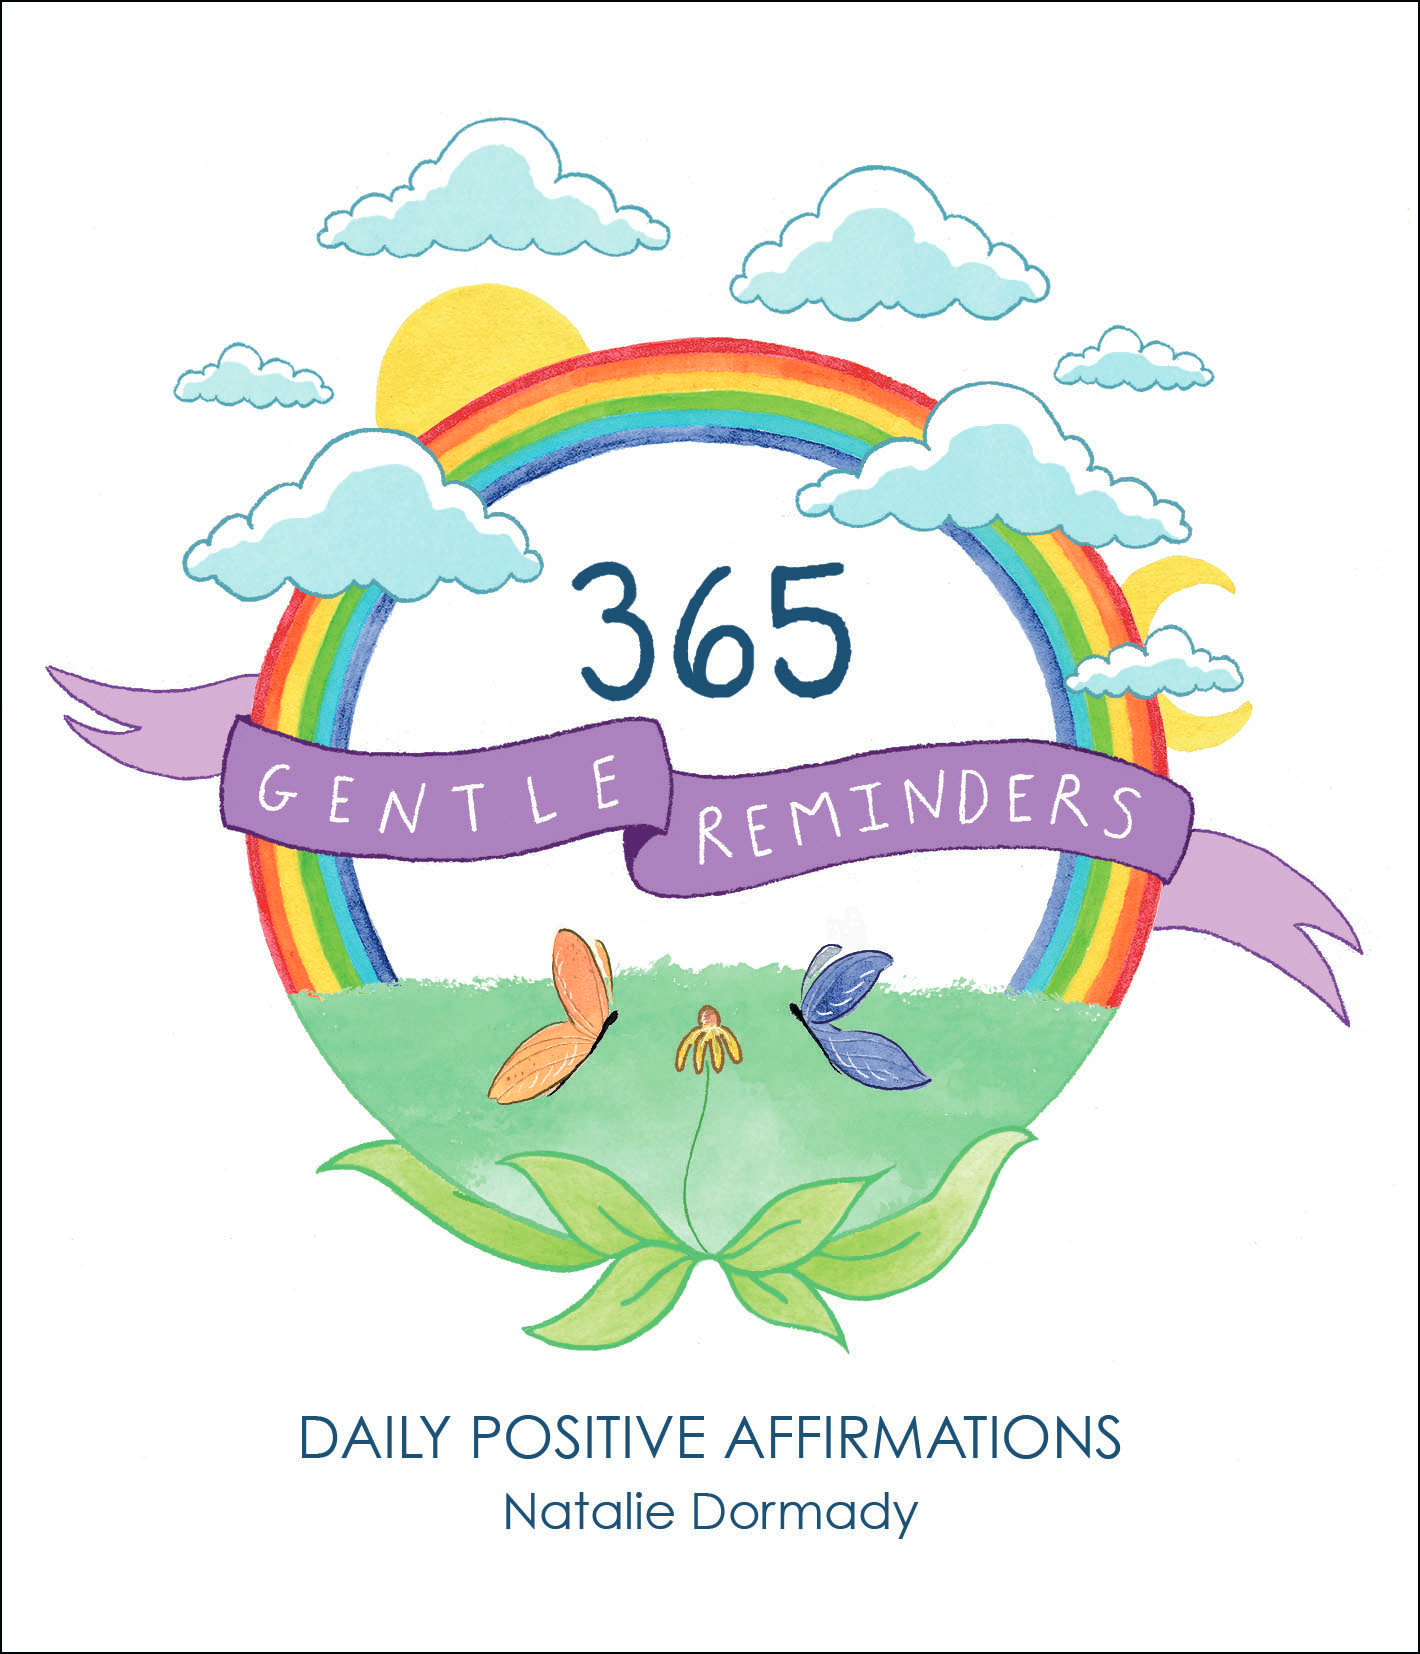 365 Gentle Reminders by Natalie Dormady